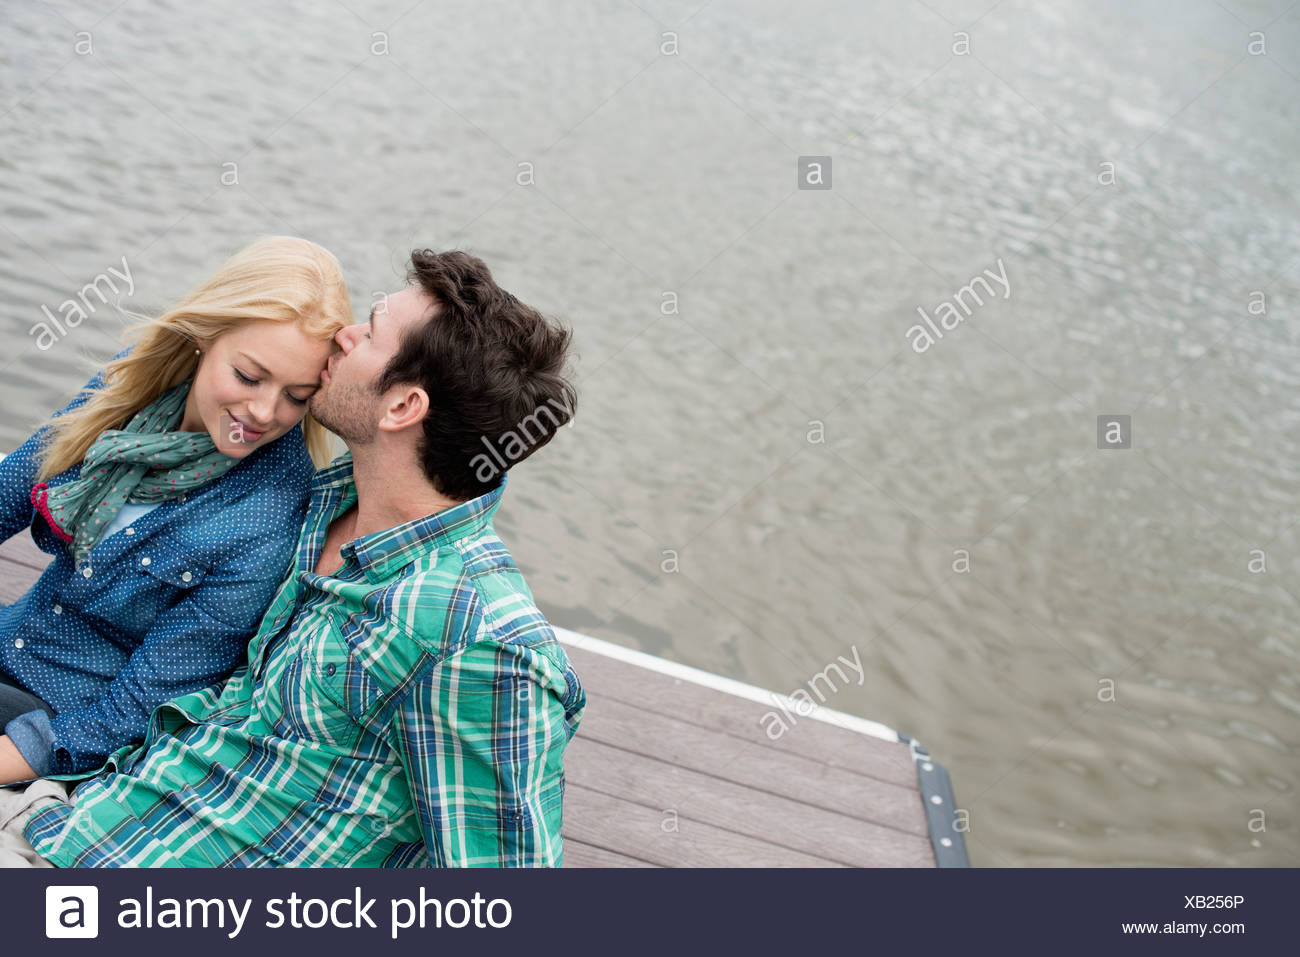 A man and woman seated on a jetty by a lake. - Stock Image